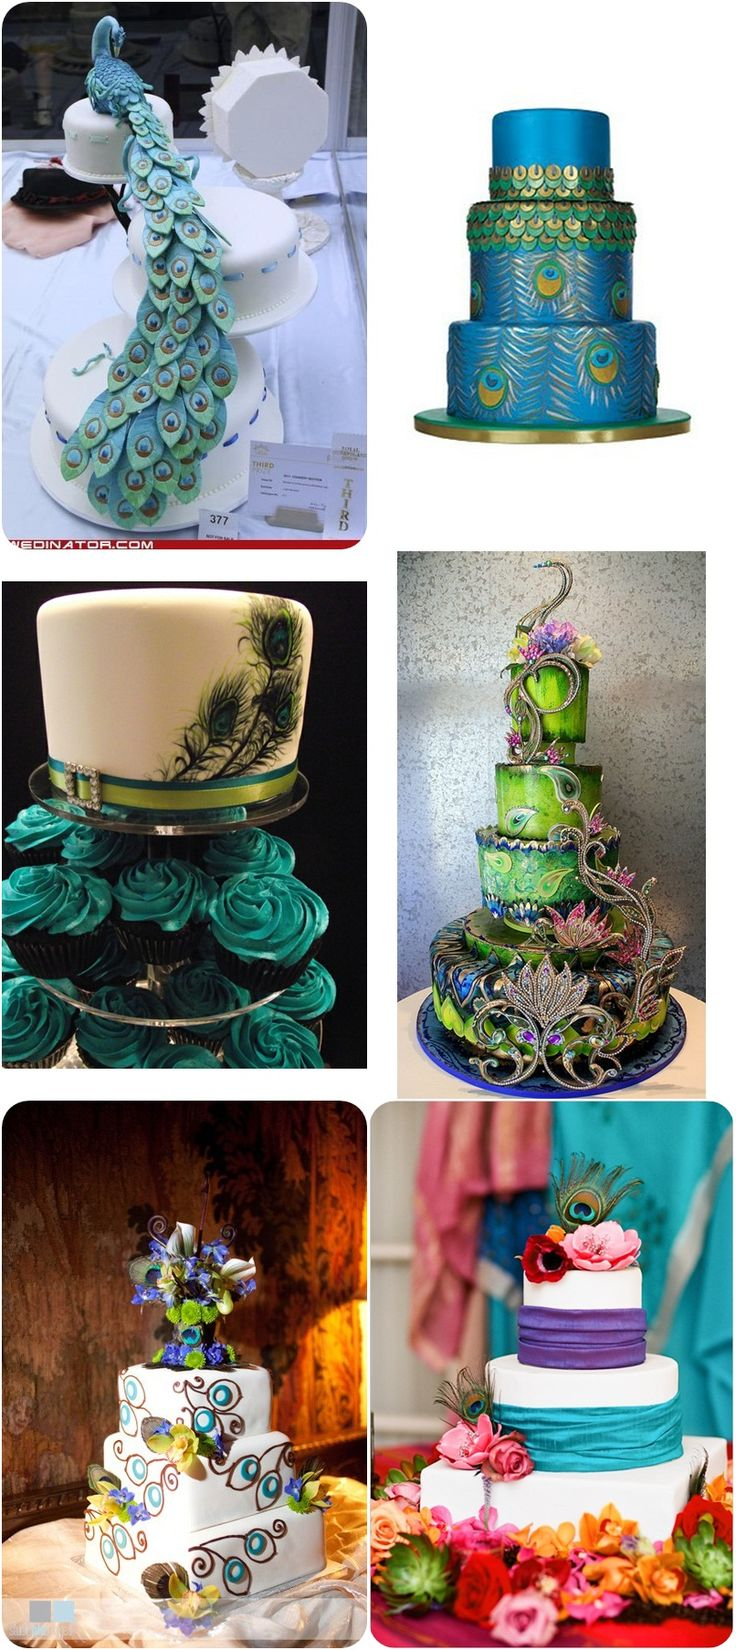 wild peacock cakes #weddingcakes #weddinginpiration #peacockwedding